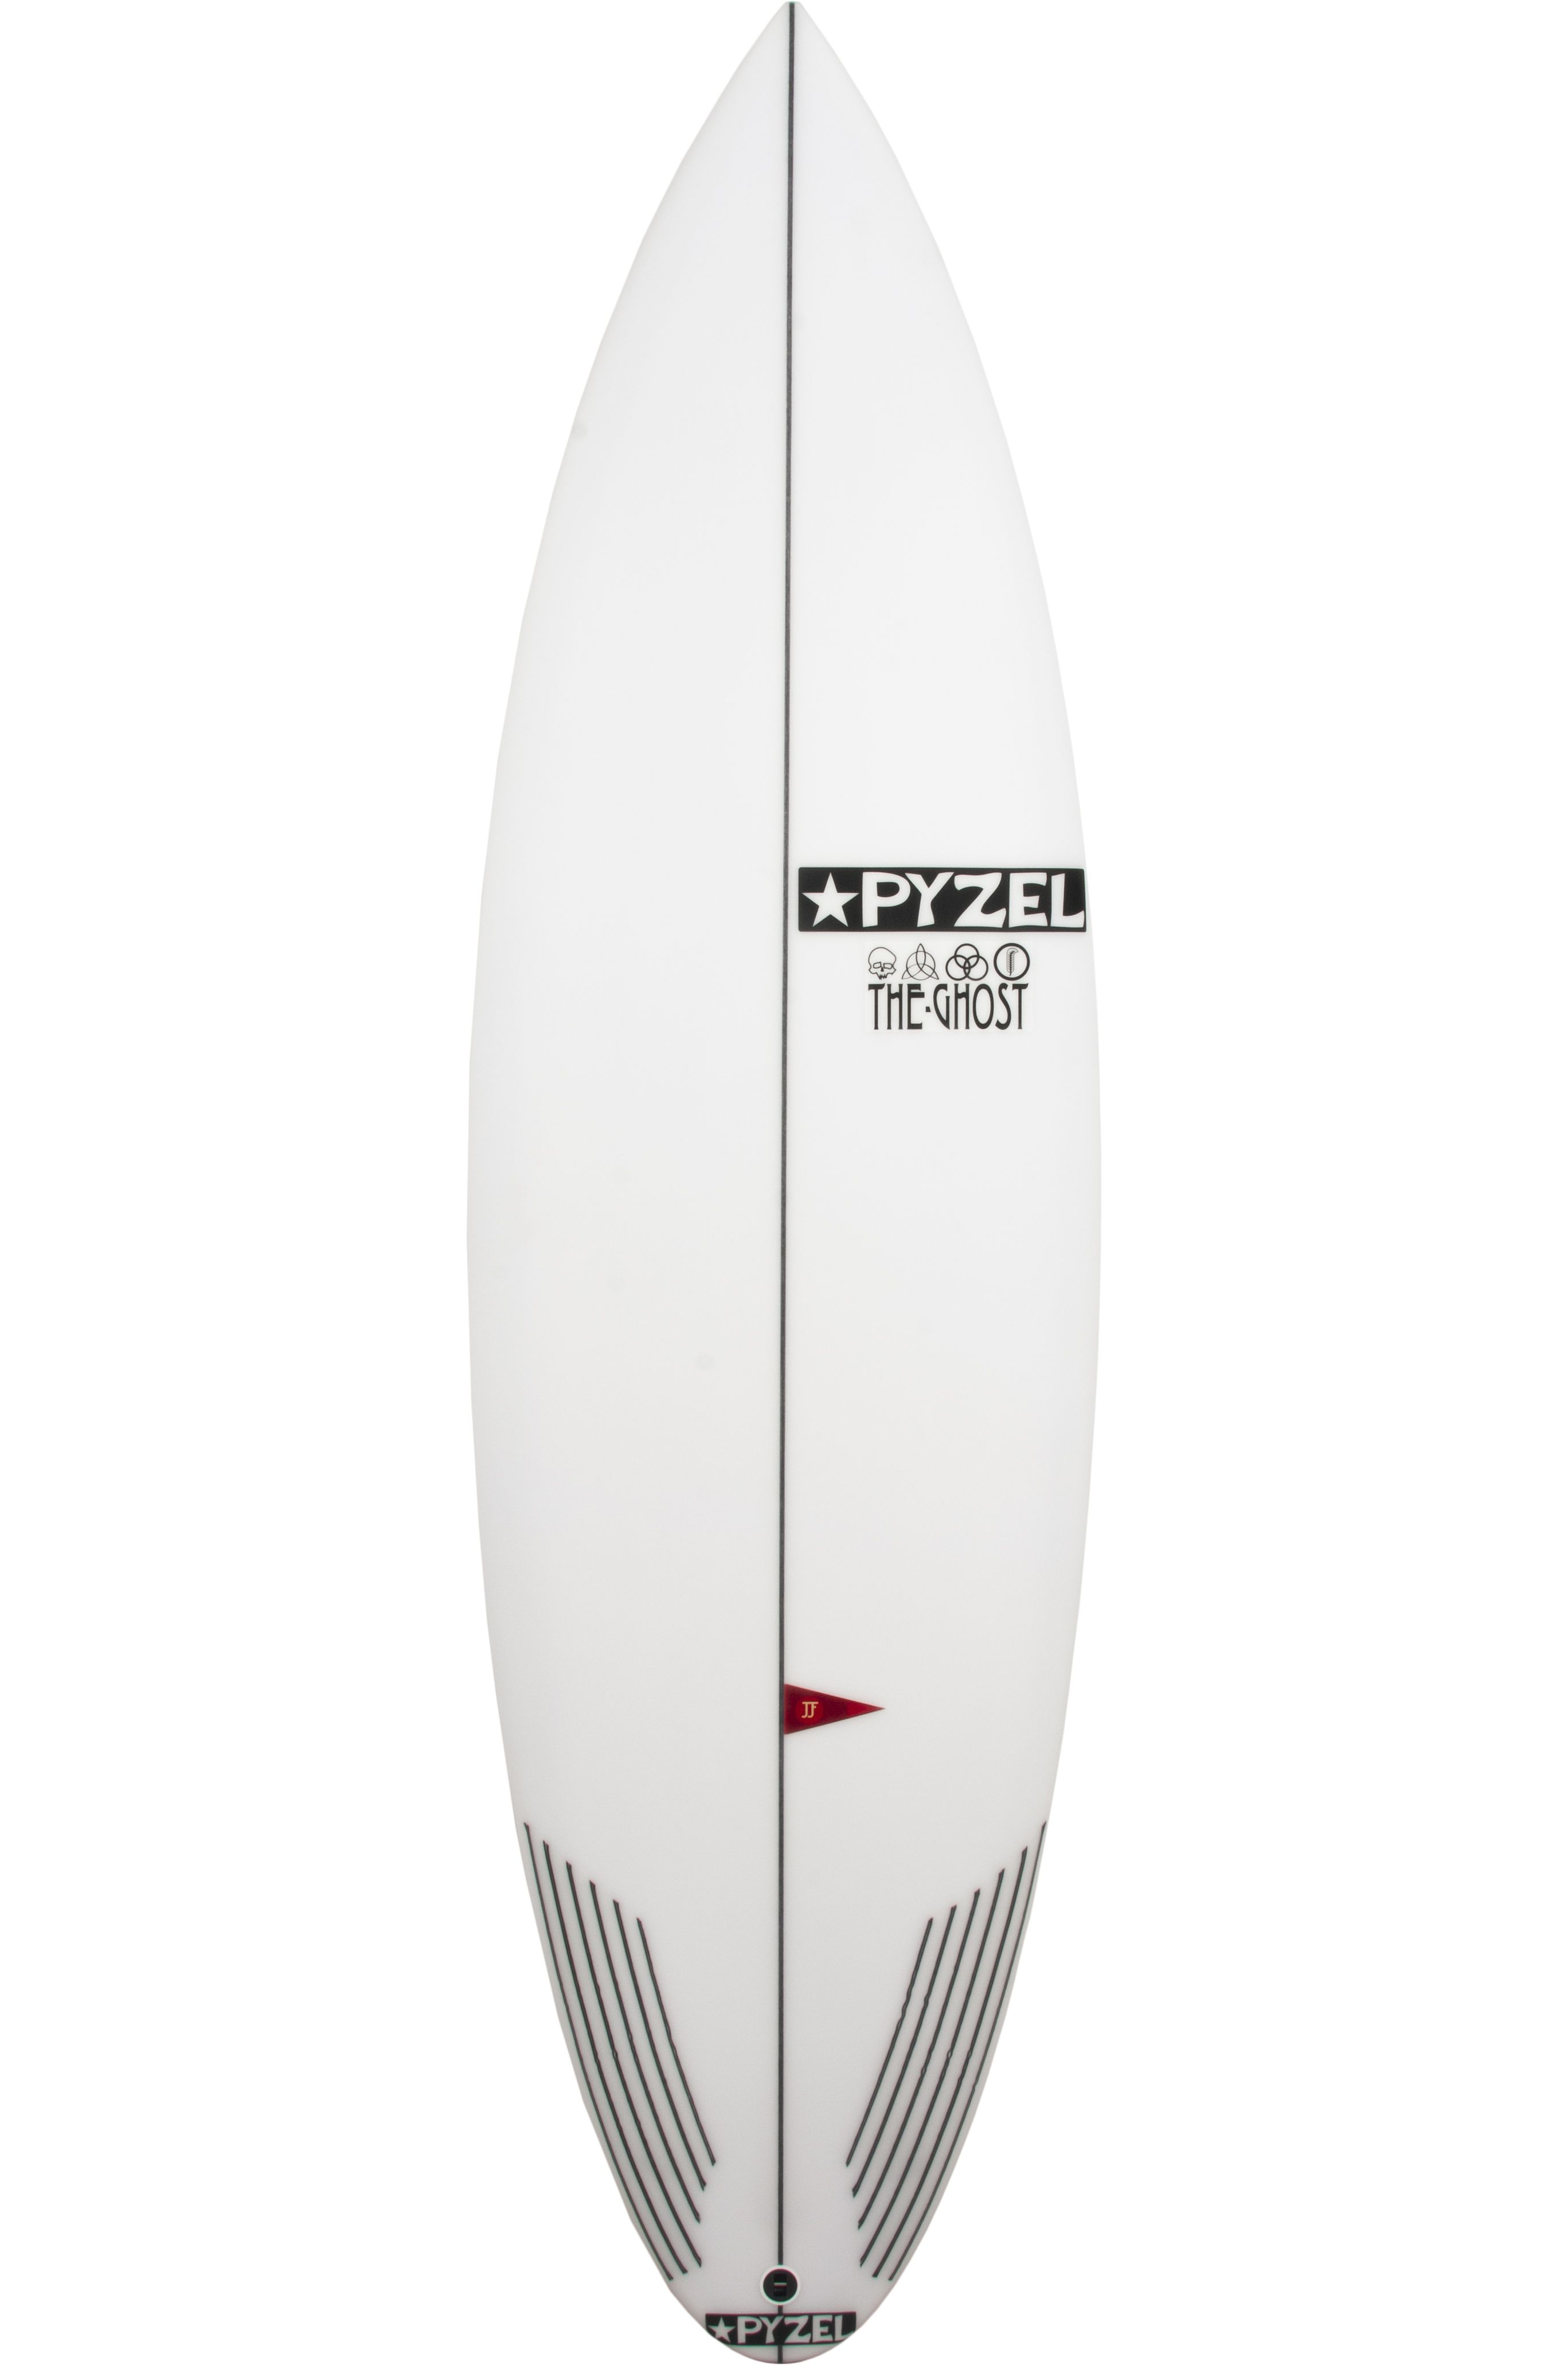 Prancha Surf Pyzel 6'0 GHOST Round Pin Tail - White FCS II Multisystem 6ft0